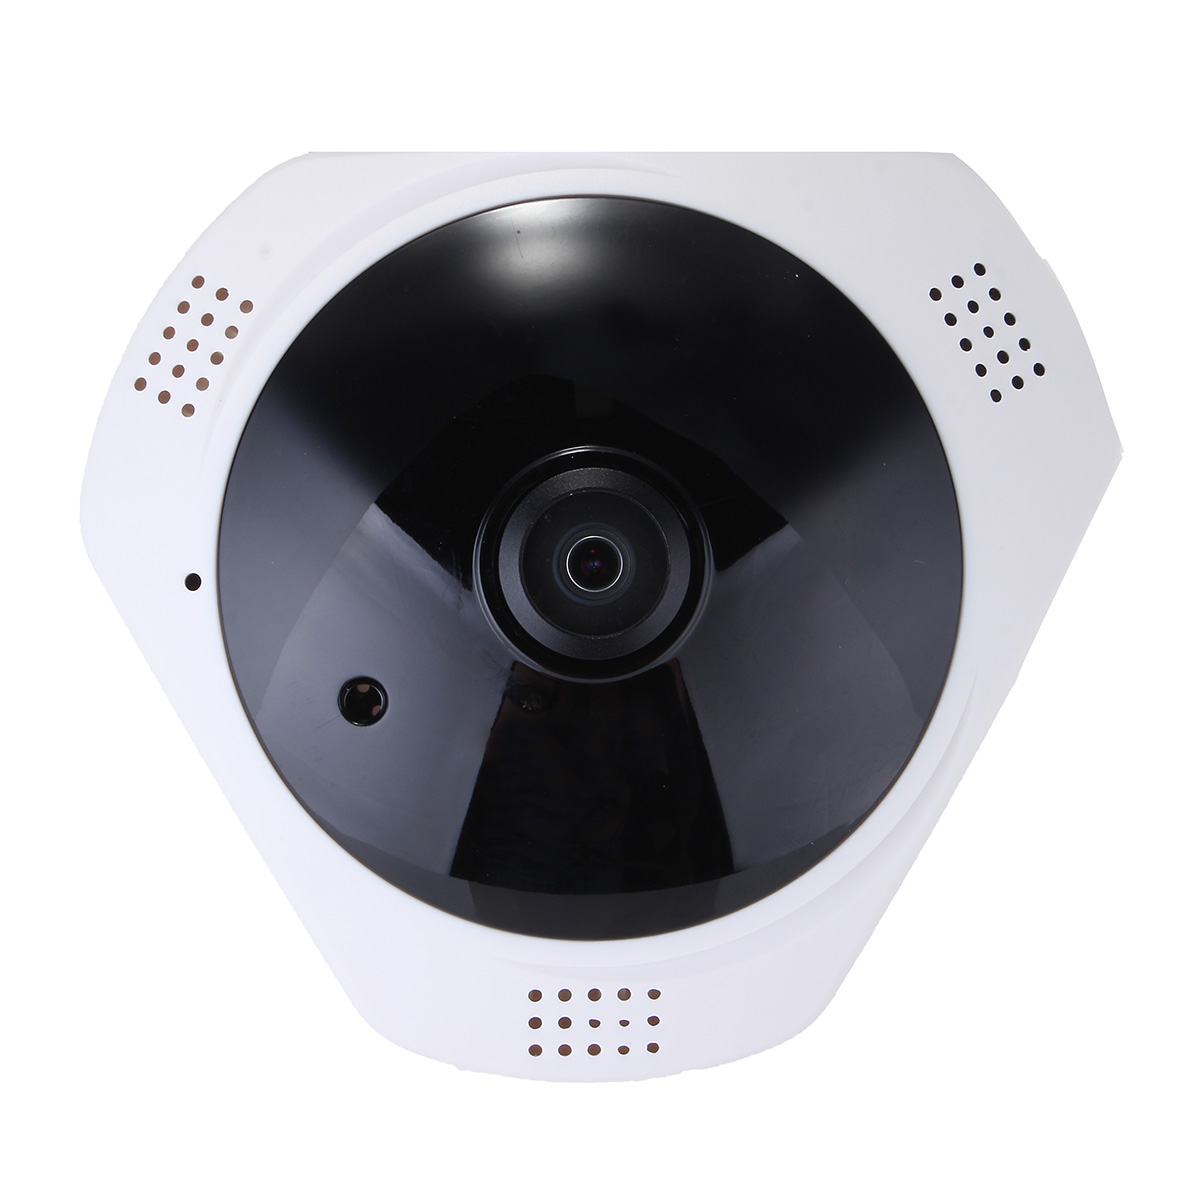 360 degree Panoramic Fisheye IP Camera Wifi Security Surveillance Camera VR 3D Cam CCTV Camera 2pcs h4 hb2 9003 cob 4 led white auto car driving light lamp bulb dc 12 24v 6000k xenon white car super bright car styling